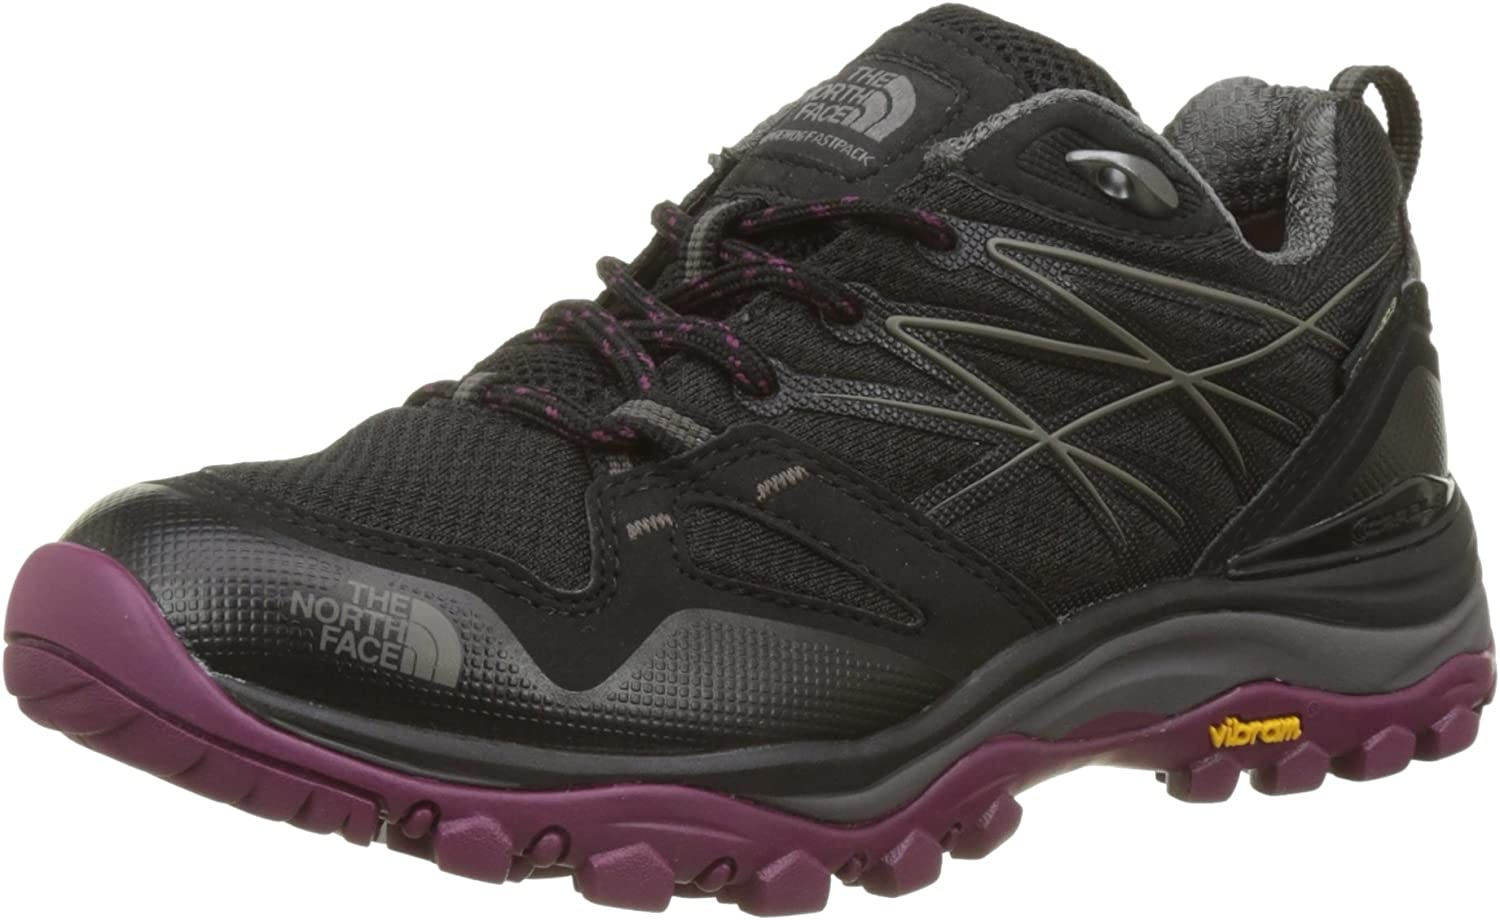 THE THE THE NORTH FACE Damen W Hedgehg FP GTX(eu) Trekking-& Wanderhalbschuhe  0bebd6